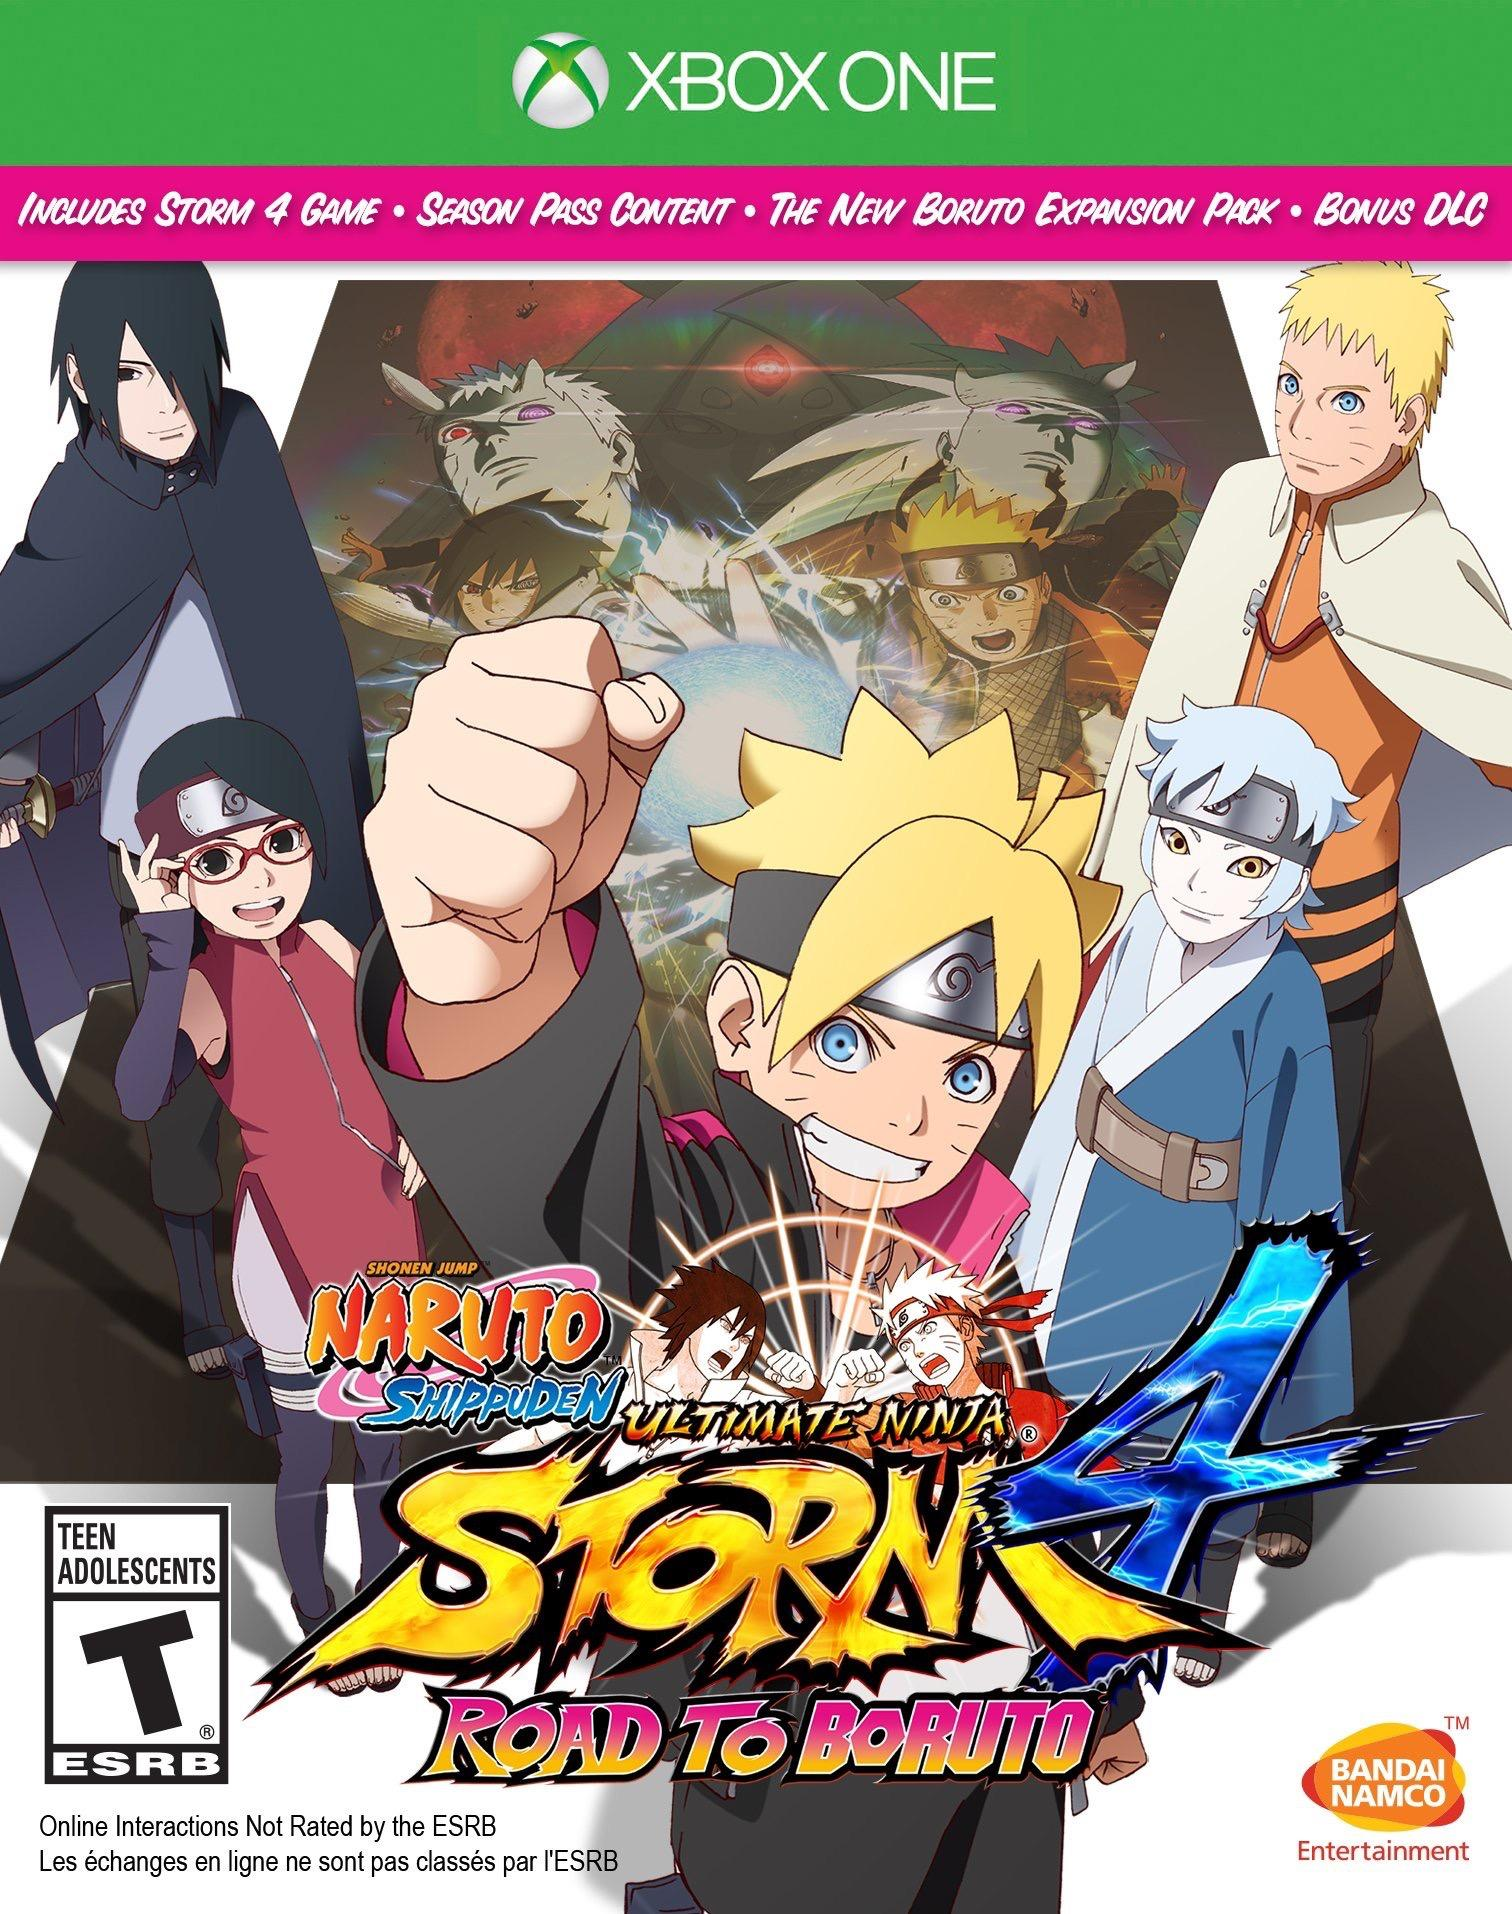 naruto-shipp-den-ultimate-ninja-storm-4-road-to-boruto